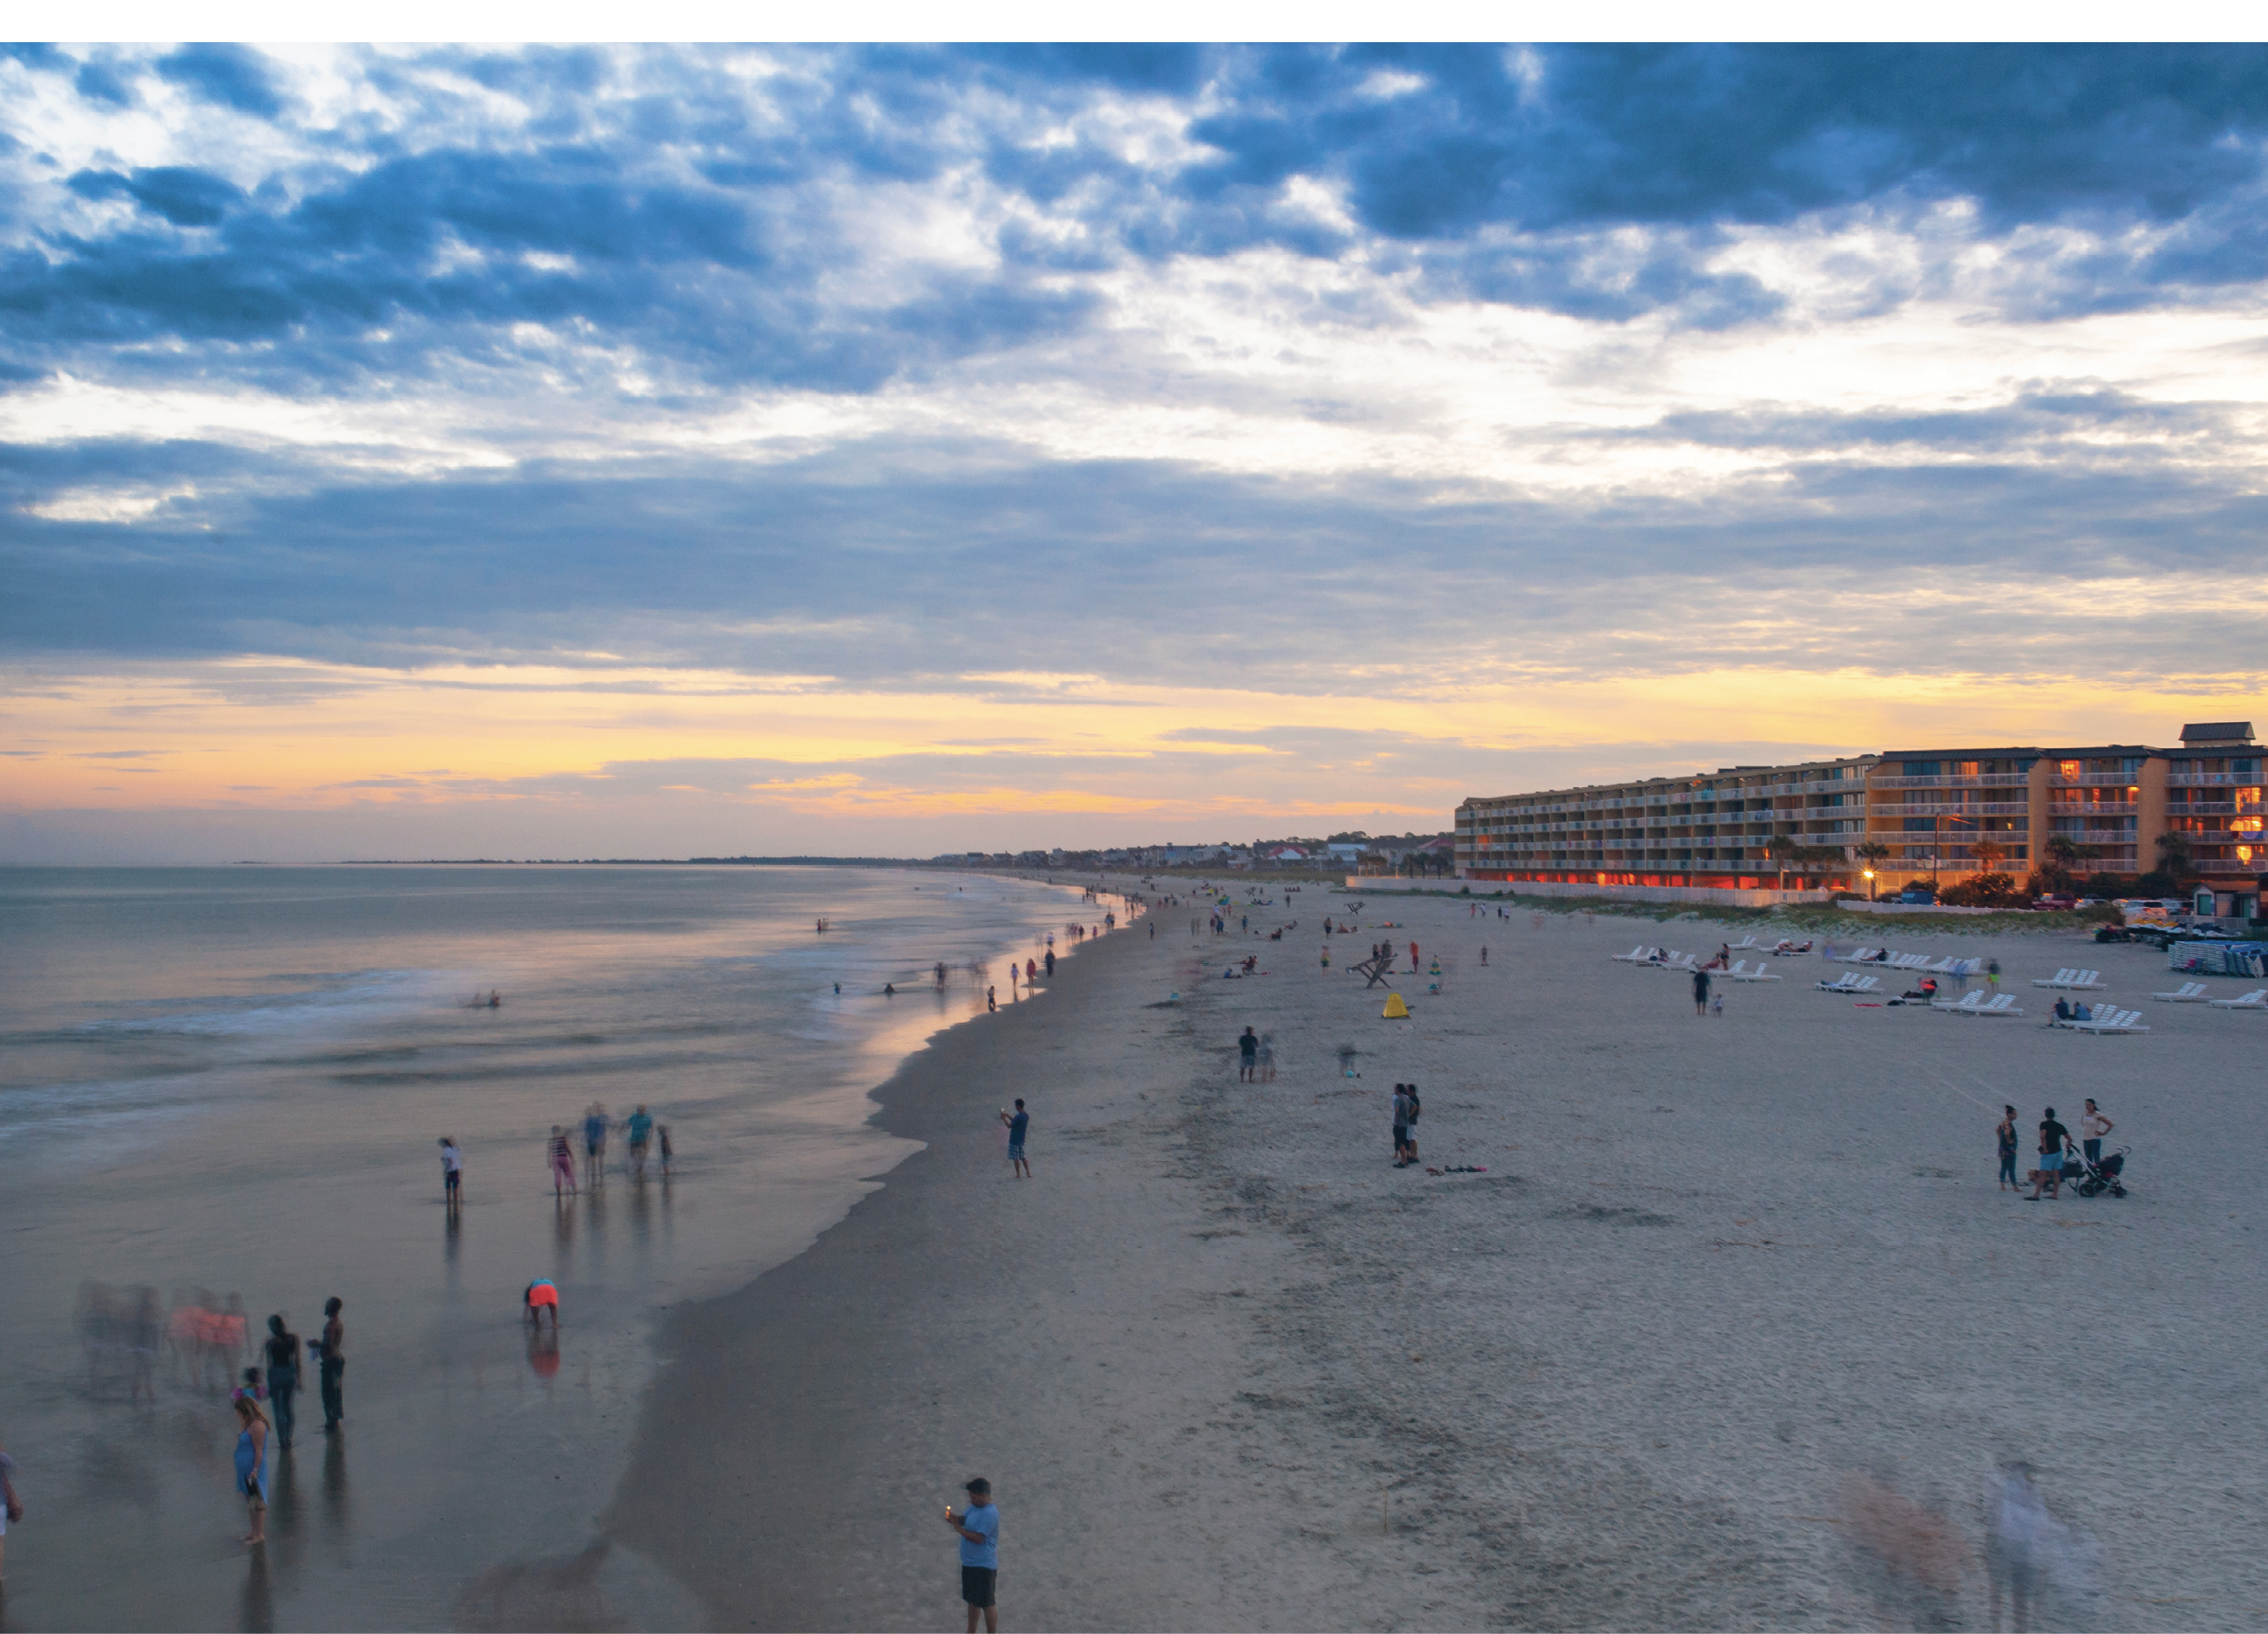 With front beach hotel and condo accommodations and an array of restaurants, bars and shops, Folly Beach (pictured above last July) welcomes visitors seeking relaxed, salty fun at the Edge of America.